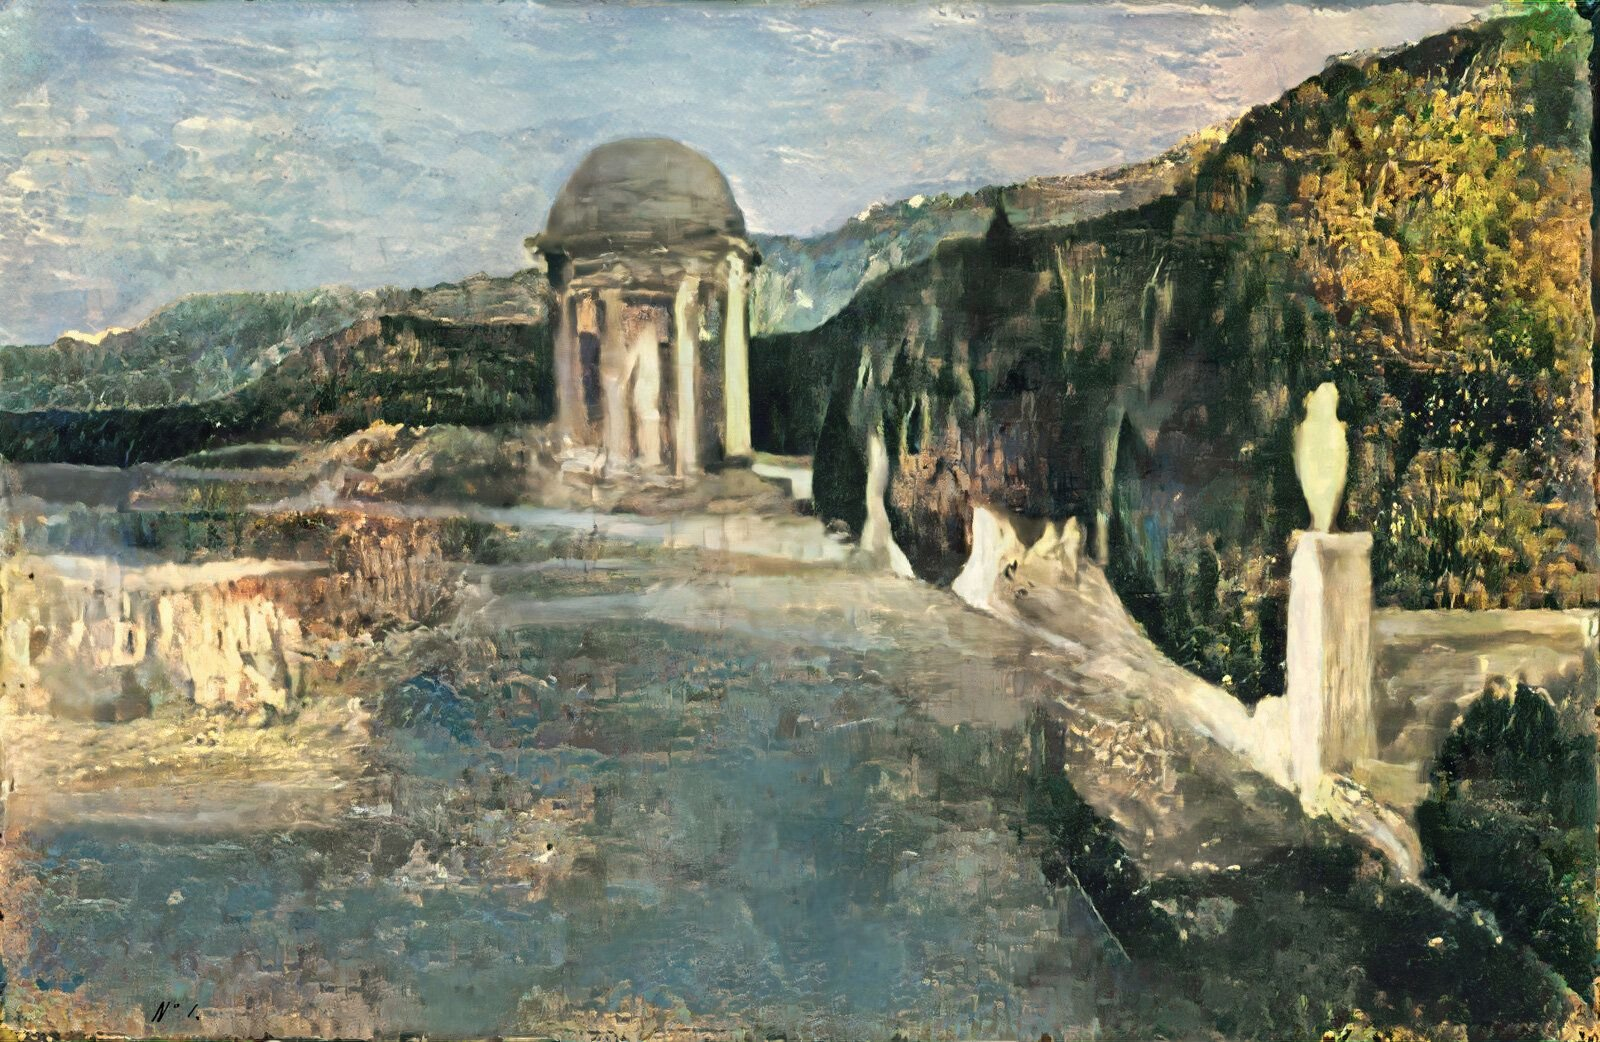 Scientists Used A.I. to Recreate a Landscape Hidden Beneath a Picasso Painting